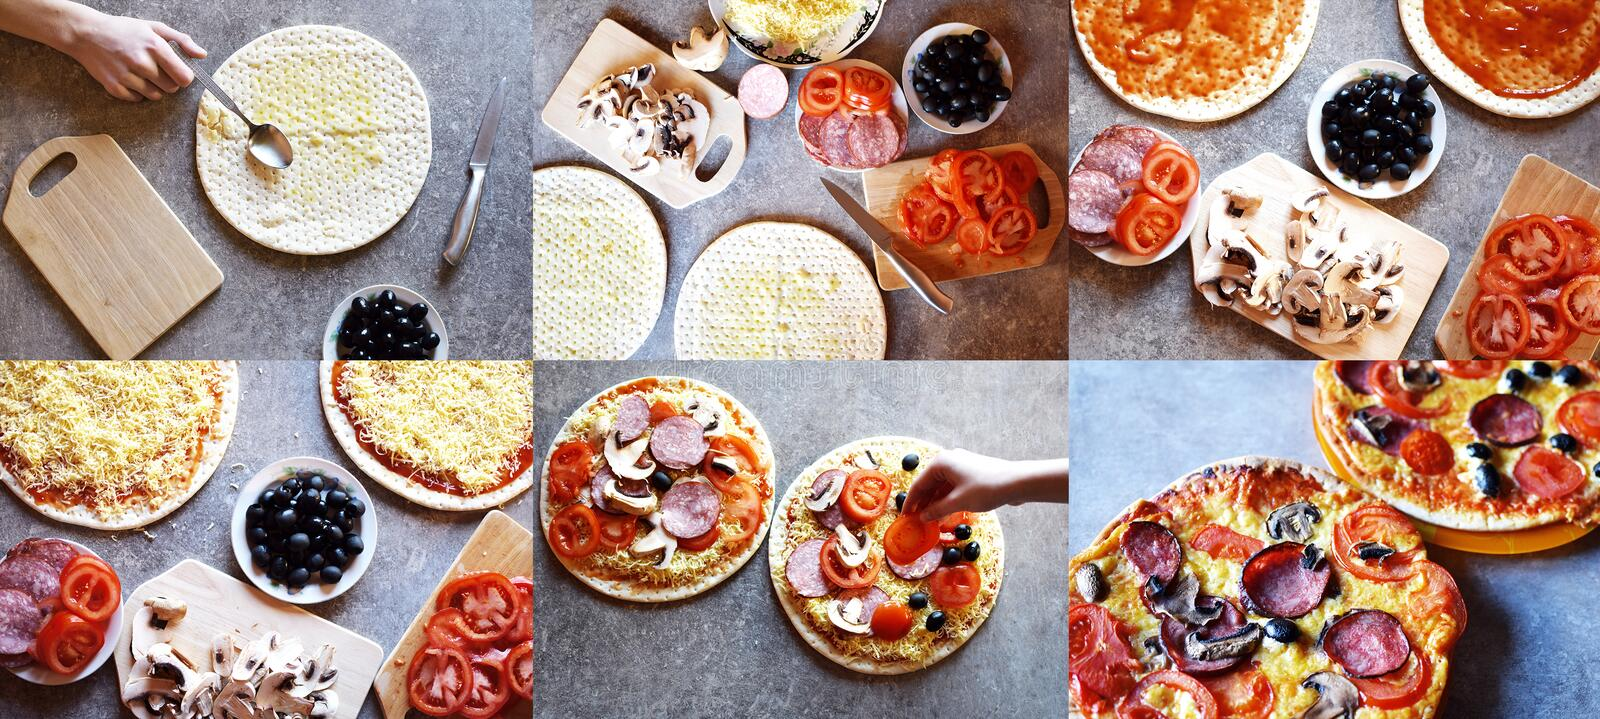 Collage of homemade pizza making process royalty free stock image